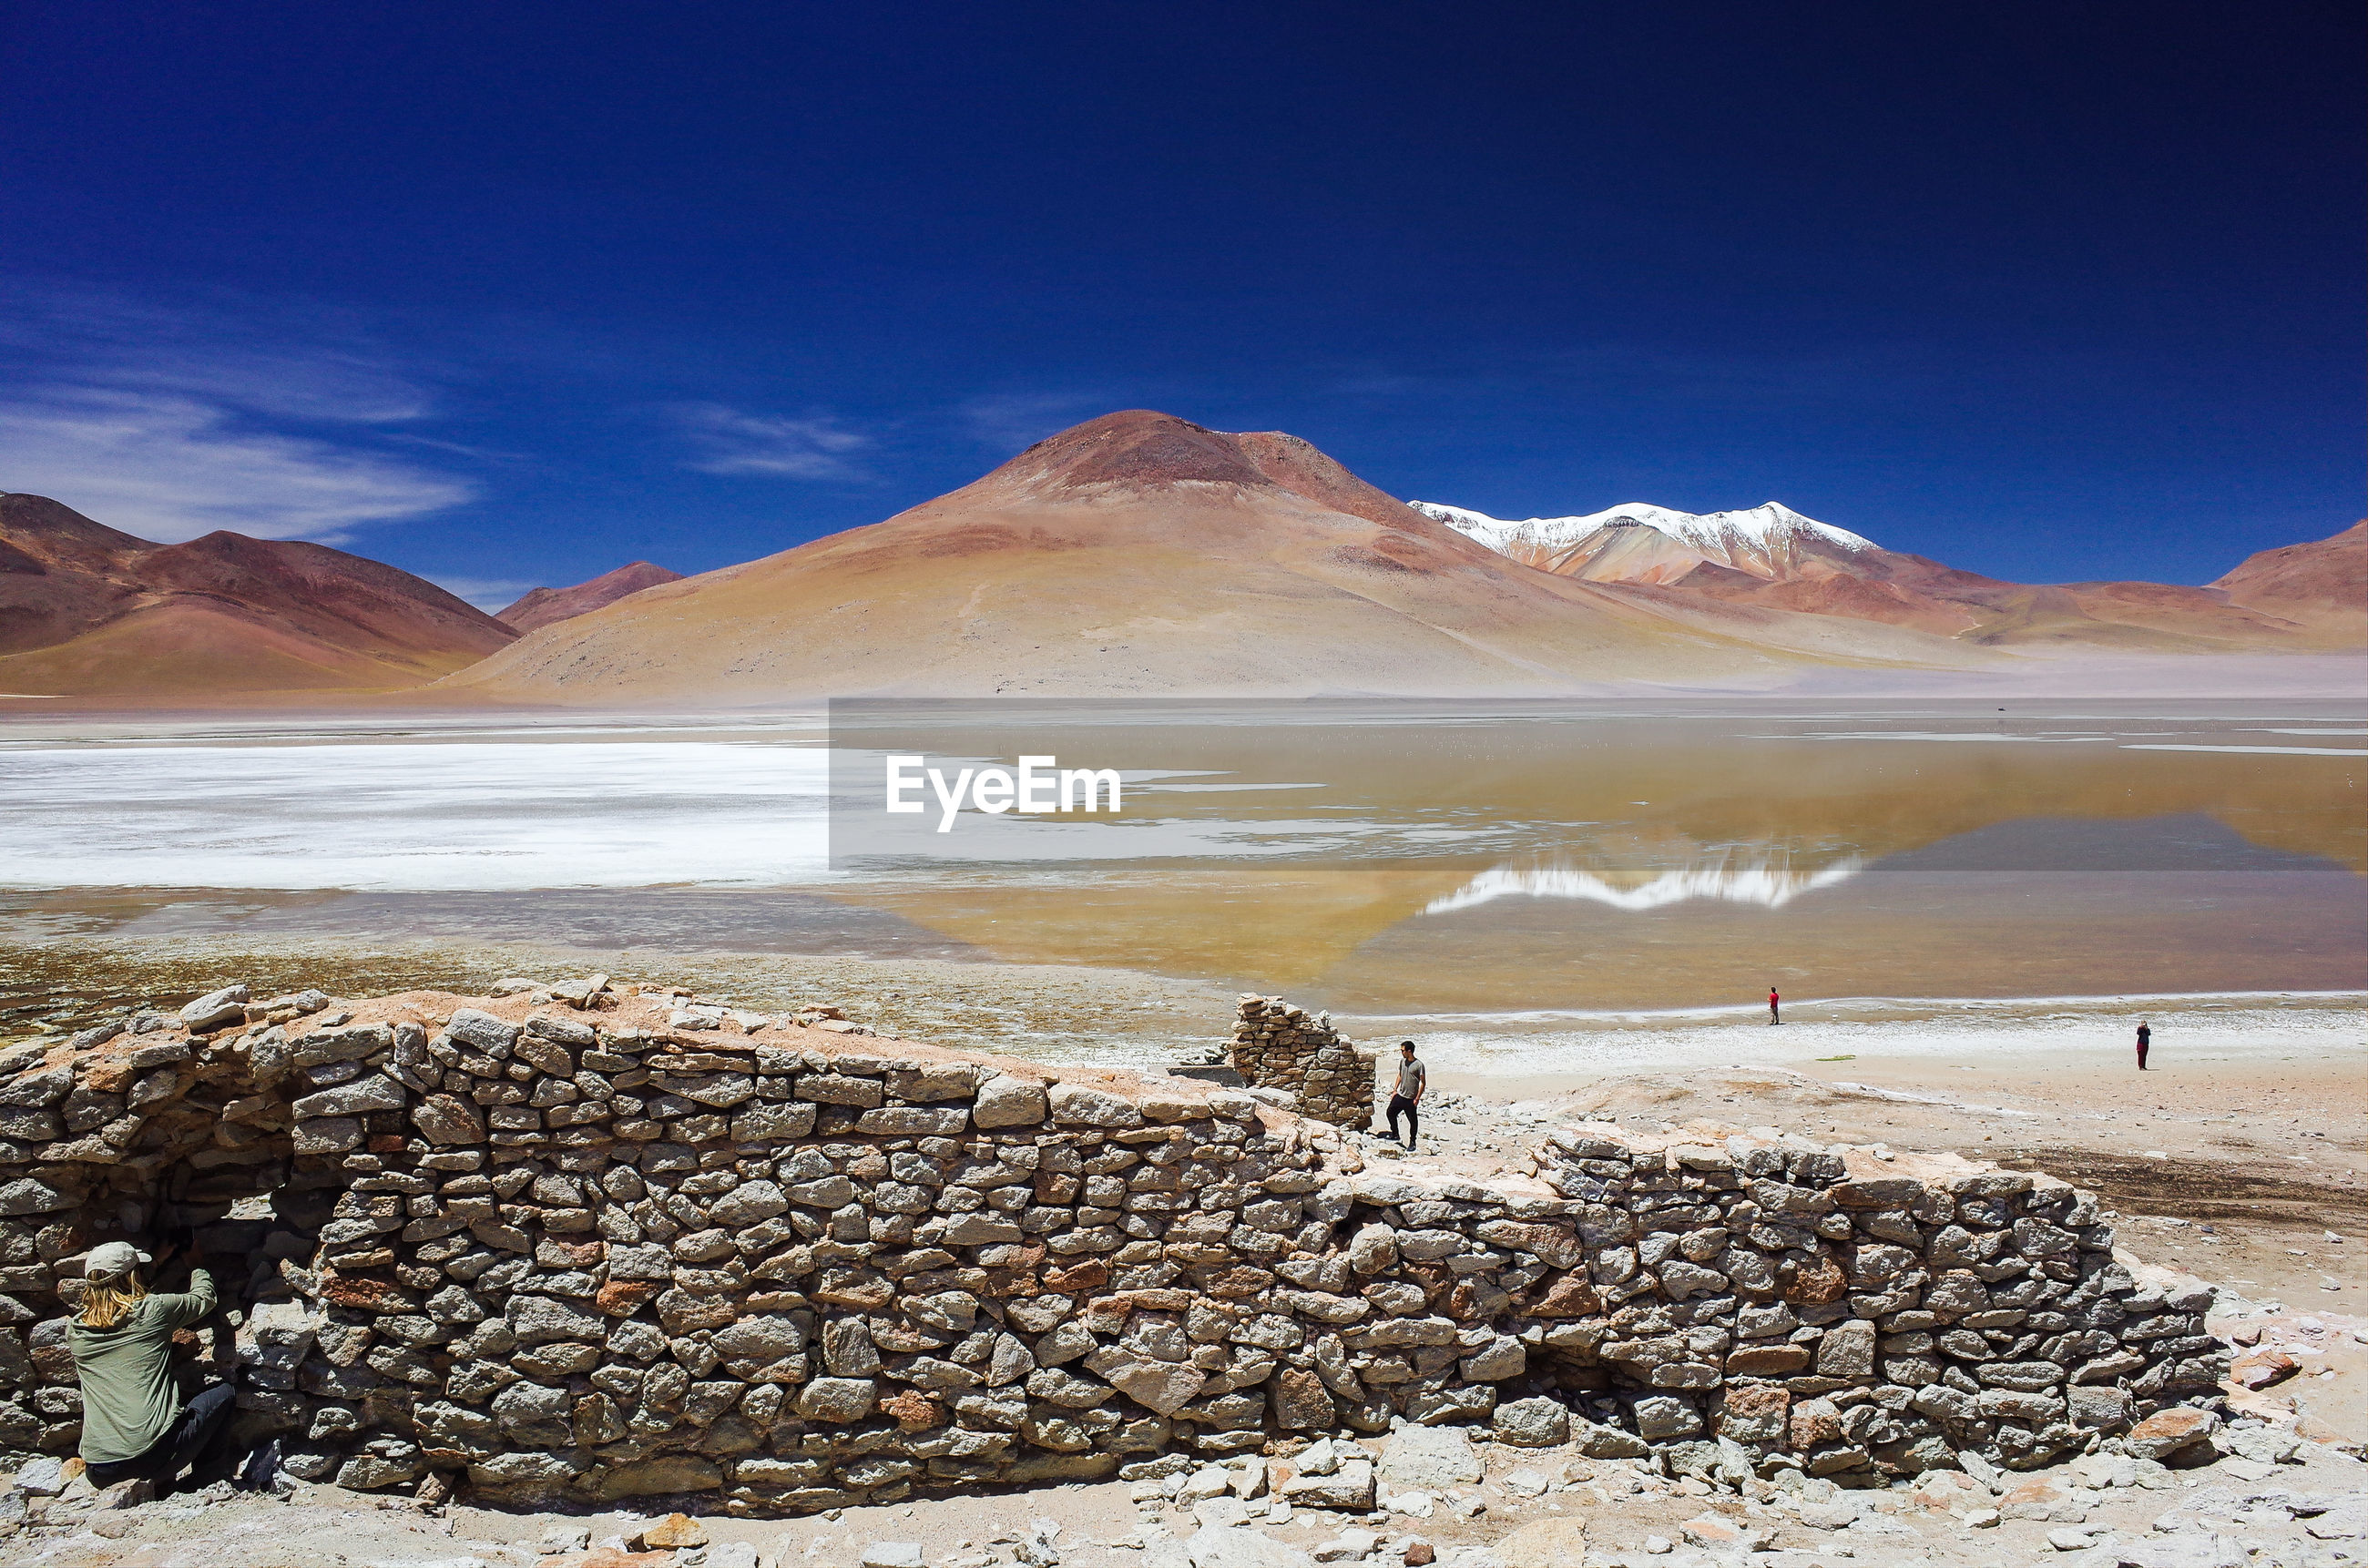 sky, mountain, beauty in nature, scenics - nature, water, nature, solid, tranquil scene, rock, day, land, tranquility, mountain range, blue, non-urban scene, cloud - sky, idyllic, beach, no people, outdoors, stone wall, snowcapped mountain